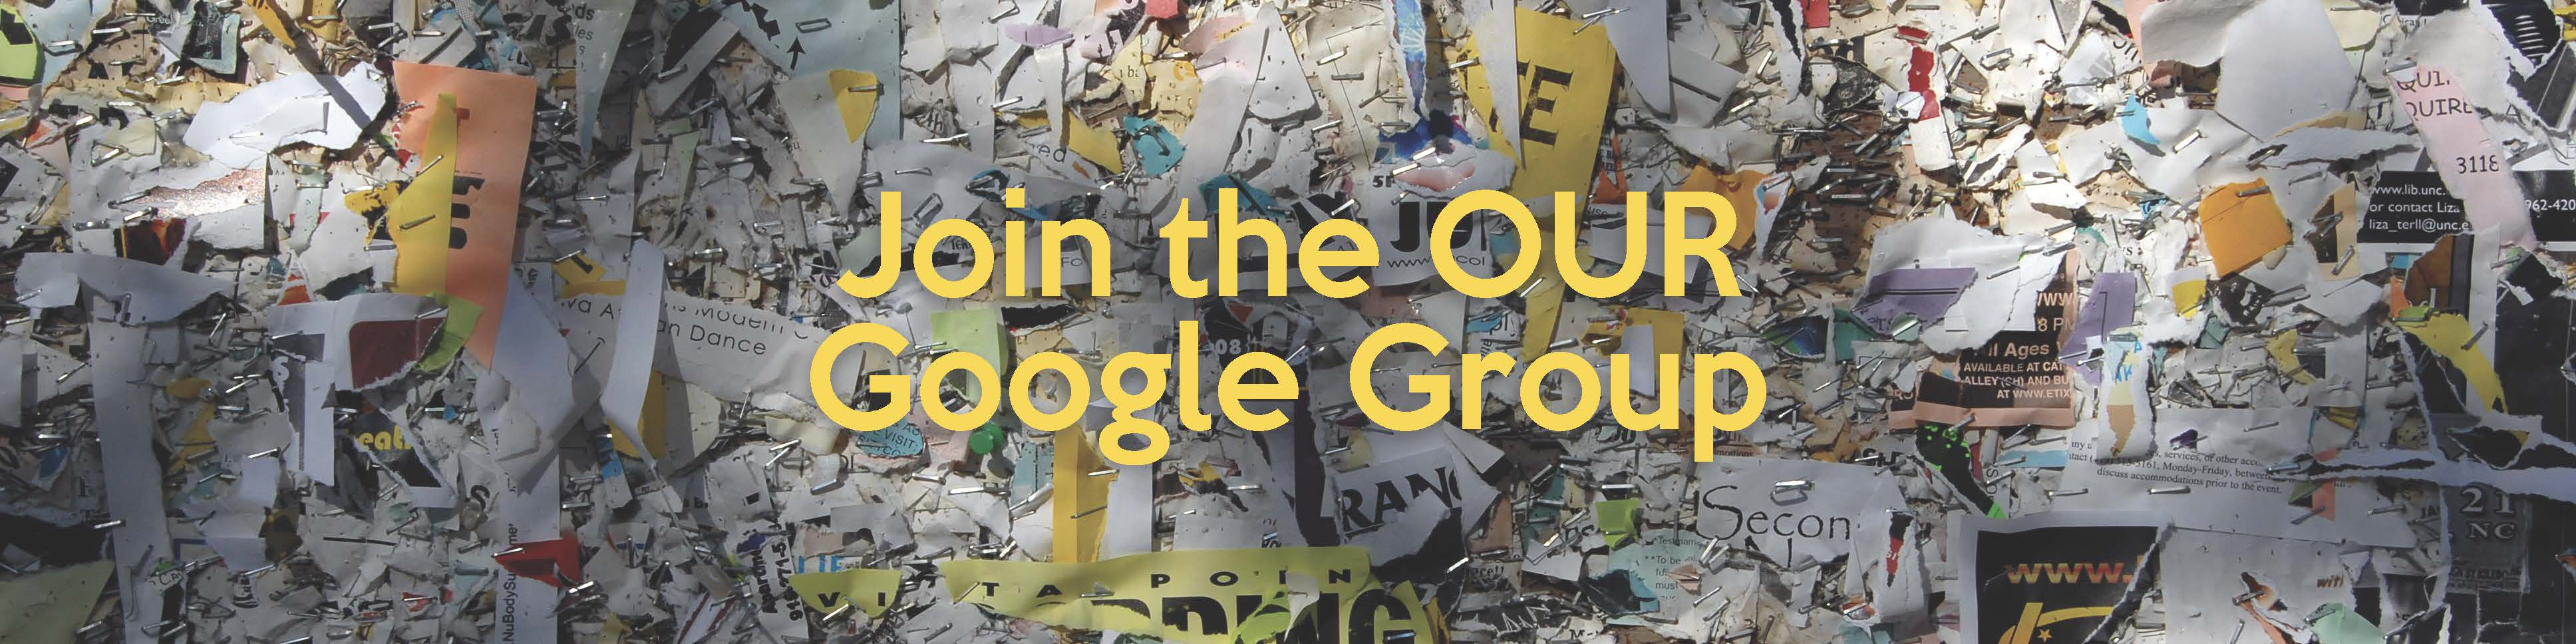 Click to join the OUR Google Group